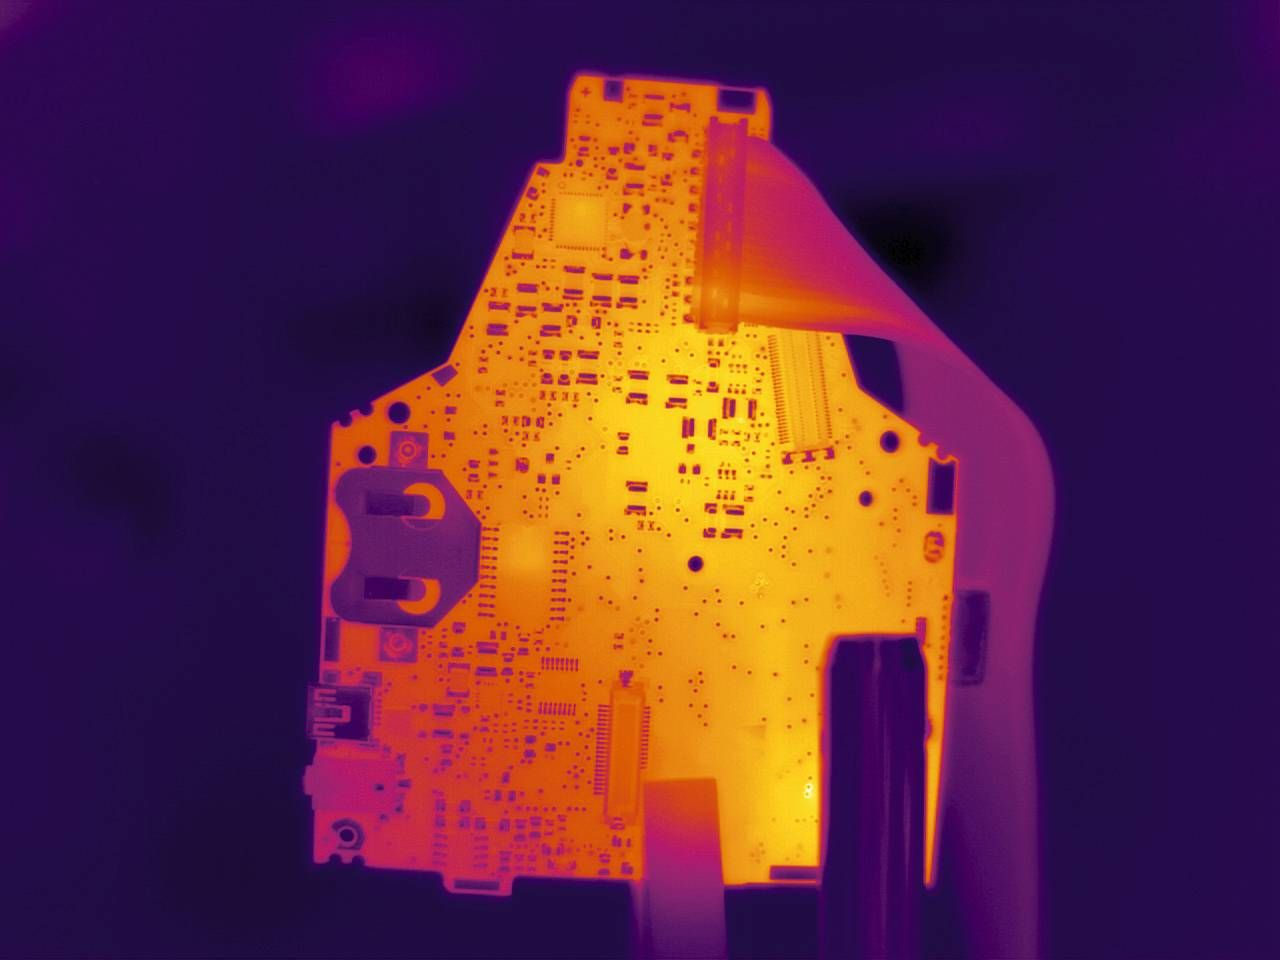 Thermal image circuit board